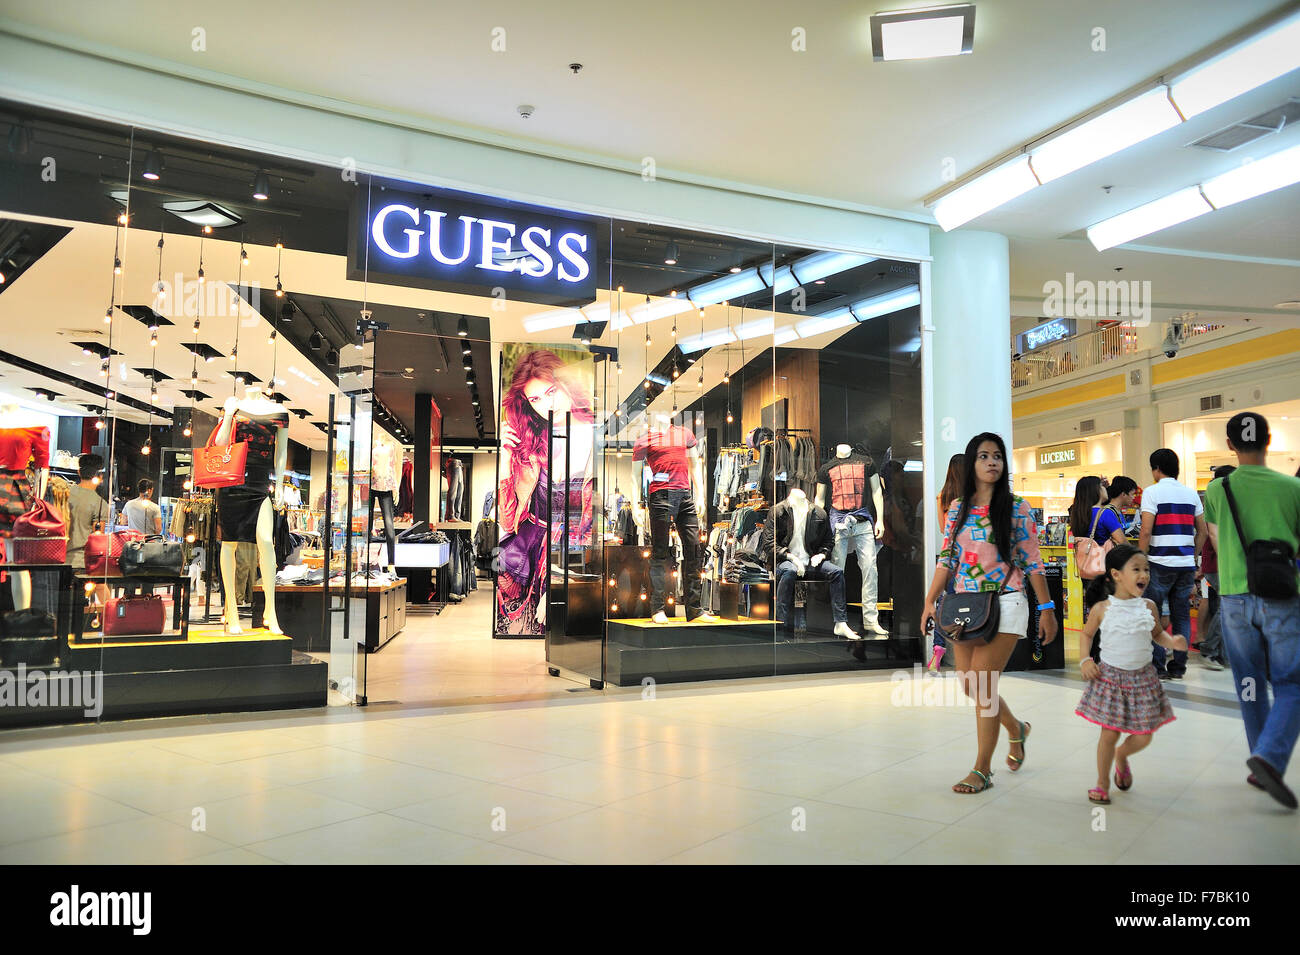 Guess clothing store locations